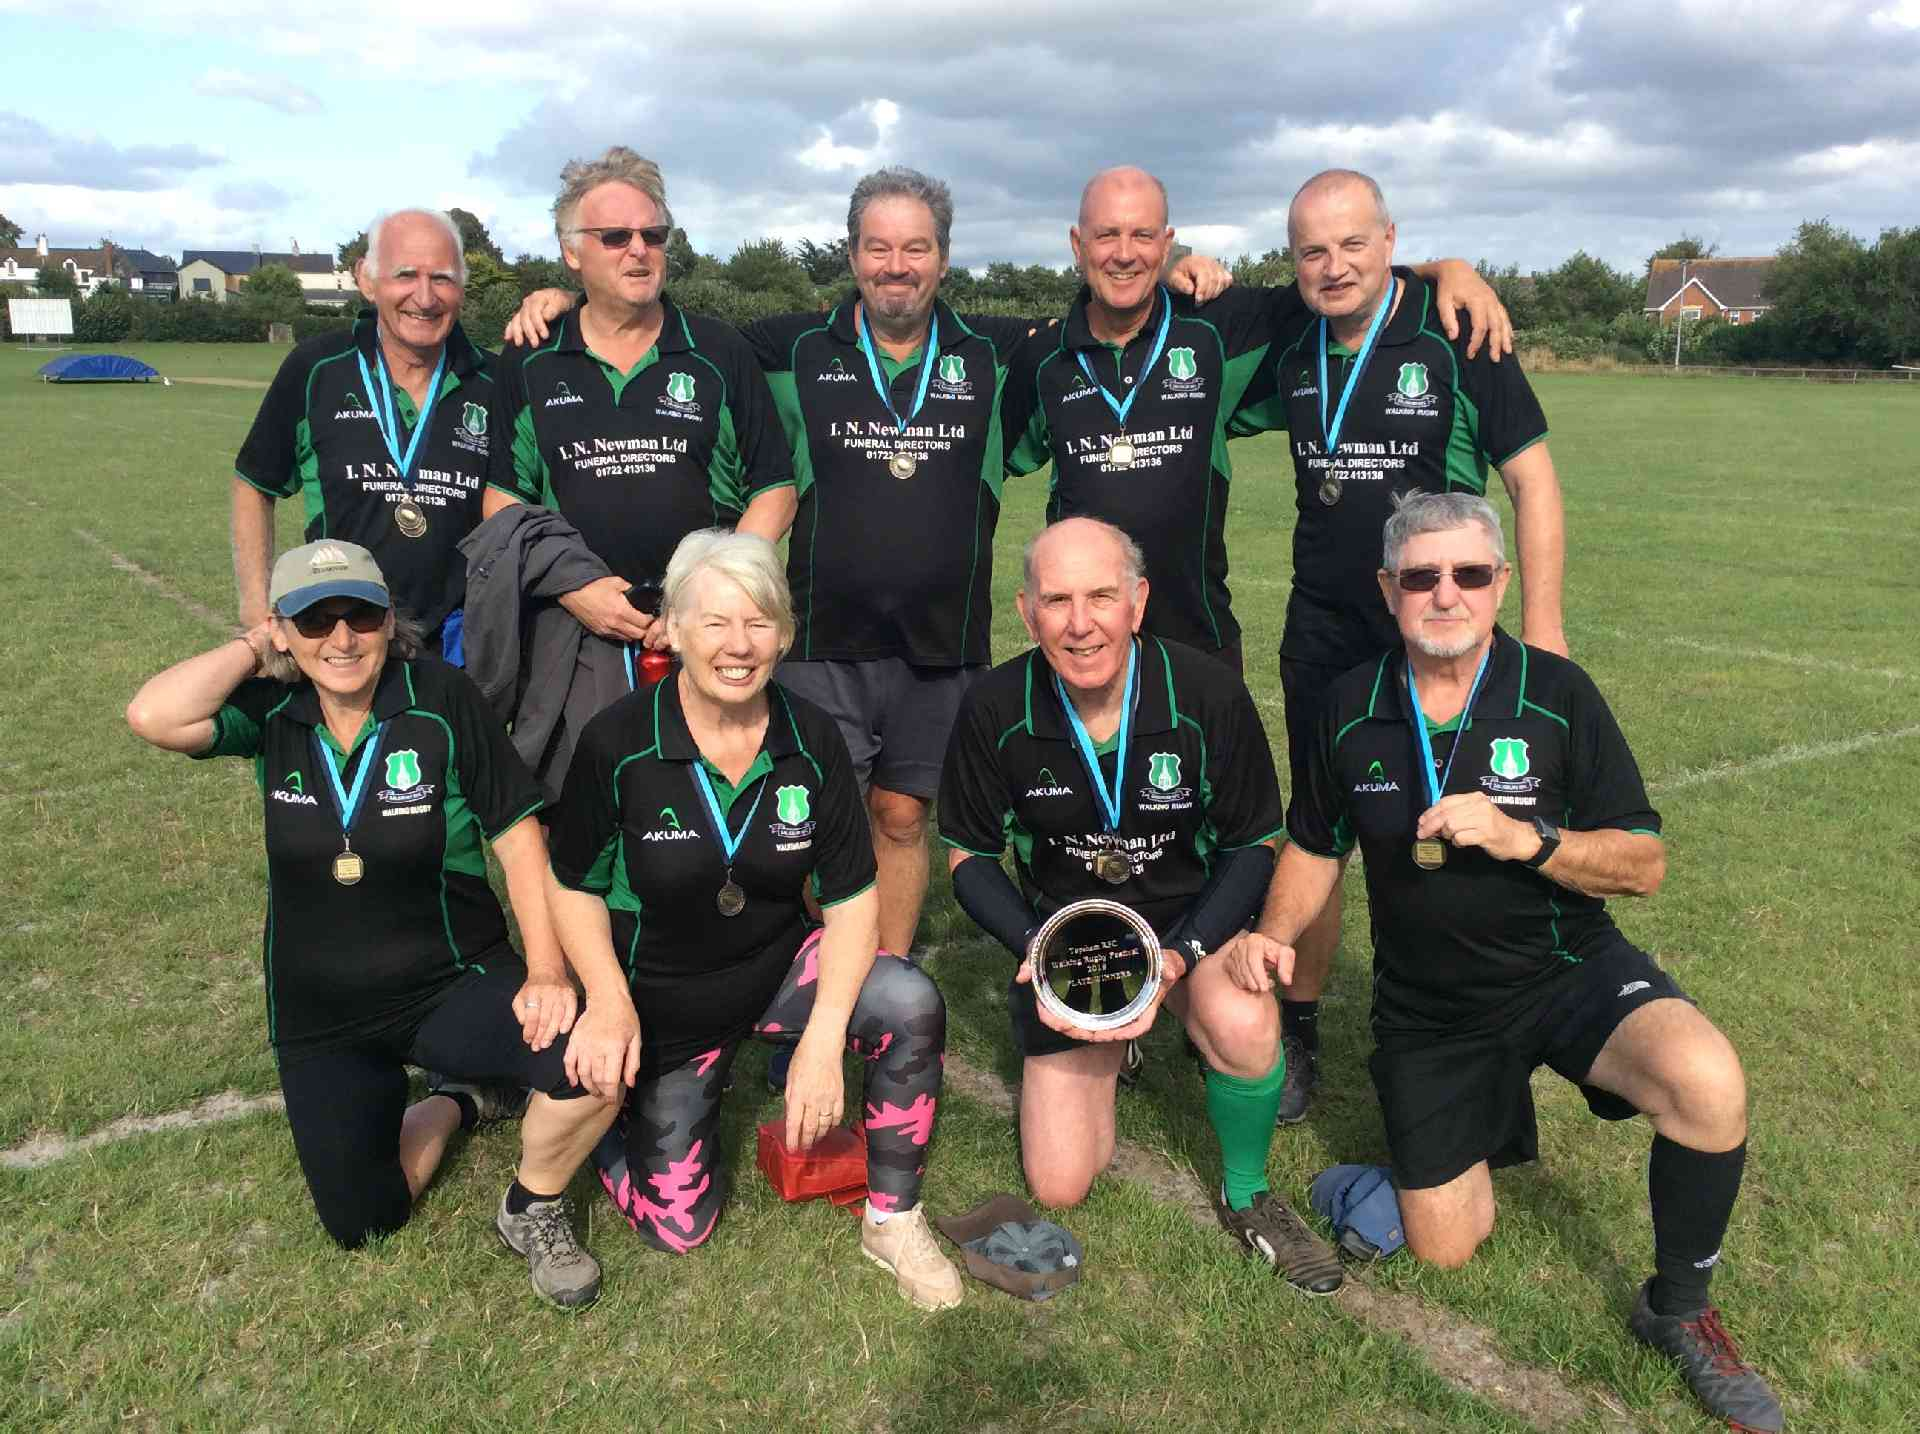 Walking Rugby Success at Topsham Festival 2019